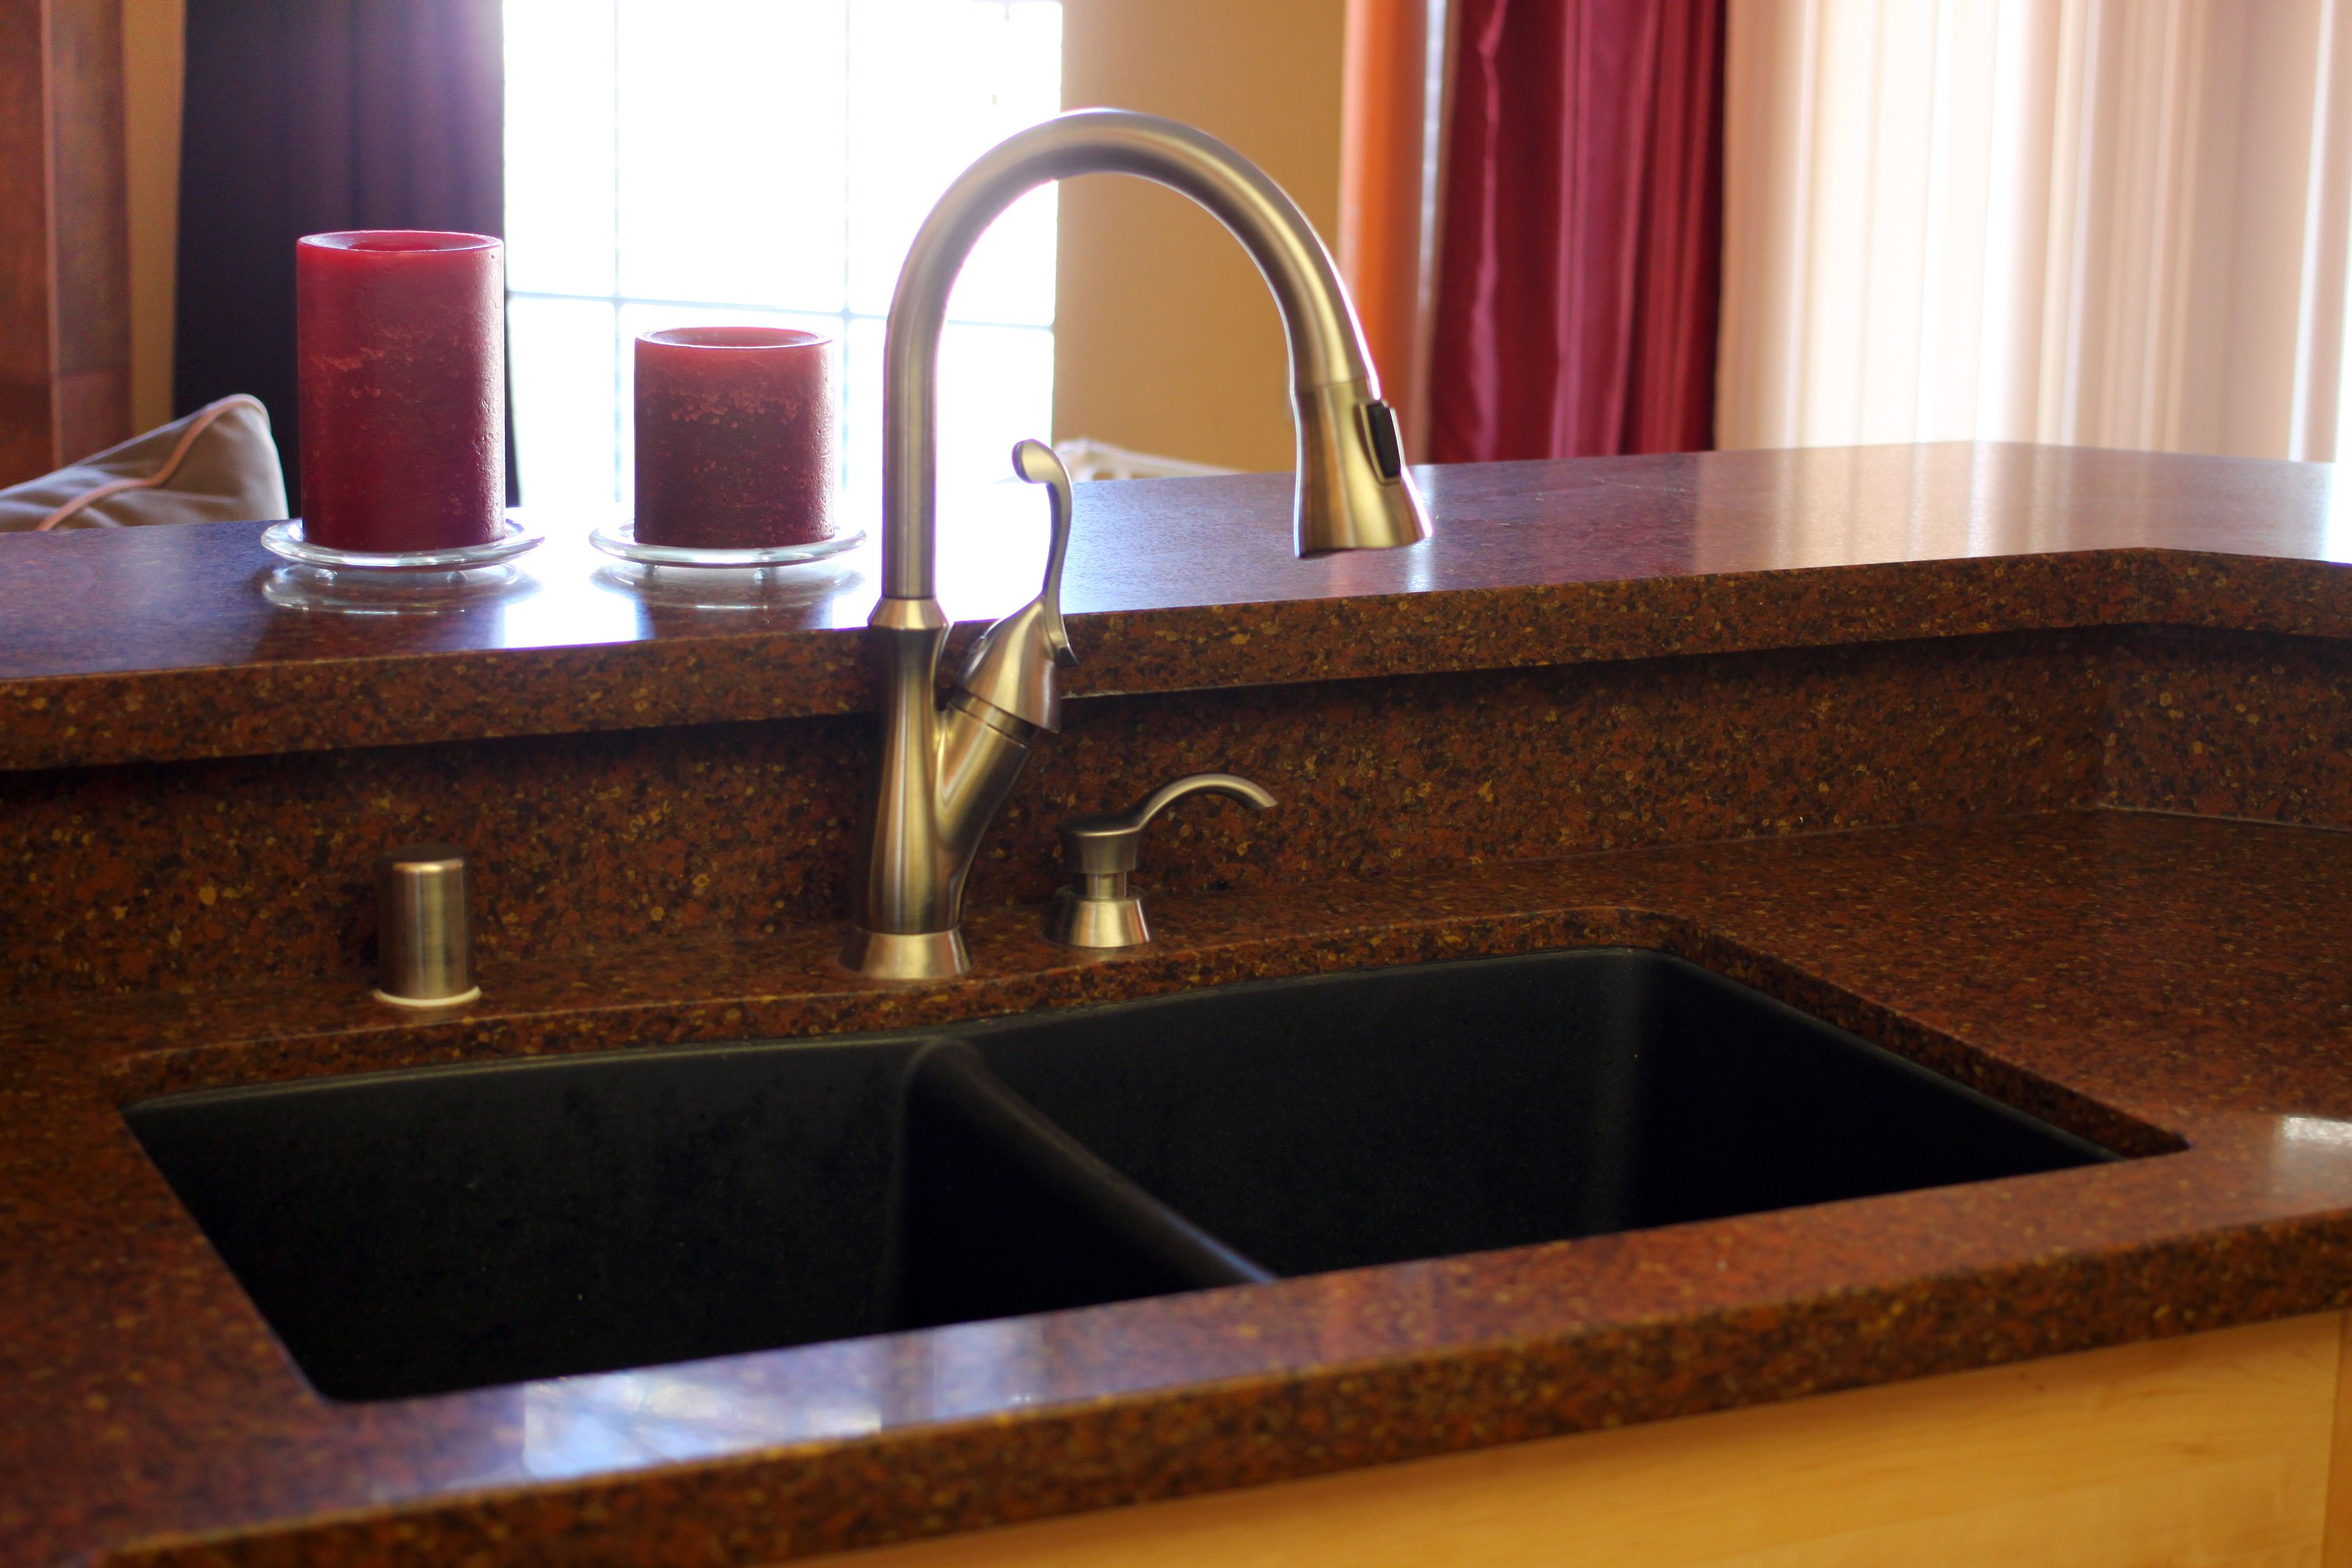 How To Clean Badly Etched Old Bathroom Sinks Composite Sinks